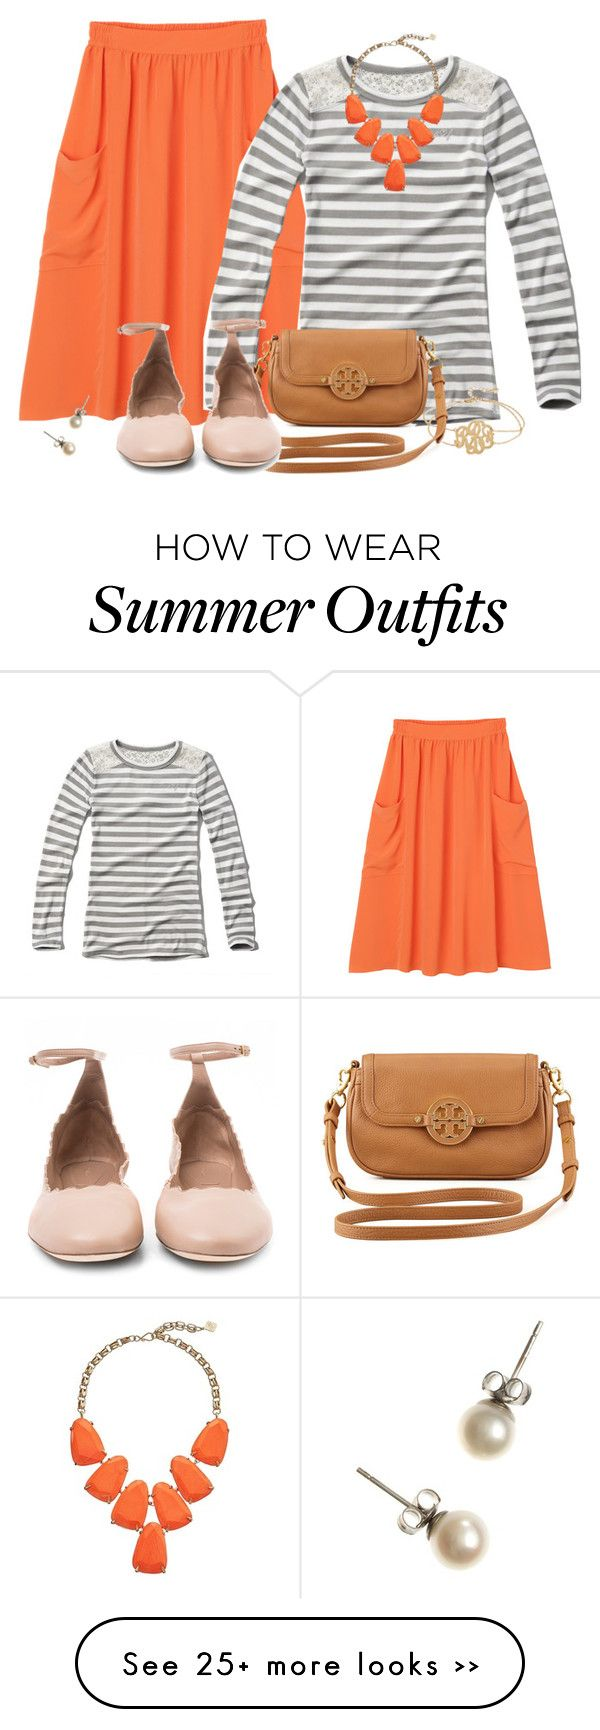 """Bright Bottom Contest!"" by jamietk on Polyvore featuring Monki, Abercrombie & Fitch, Kendra Scott, Kate Spade, Tory Burch, J.Crew, Chloé and transitionstyle"